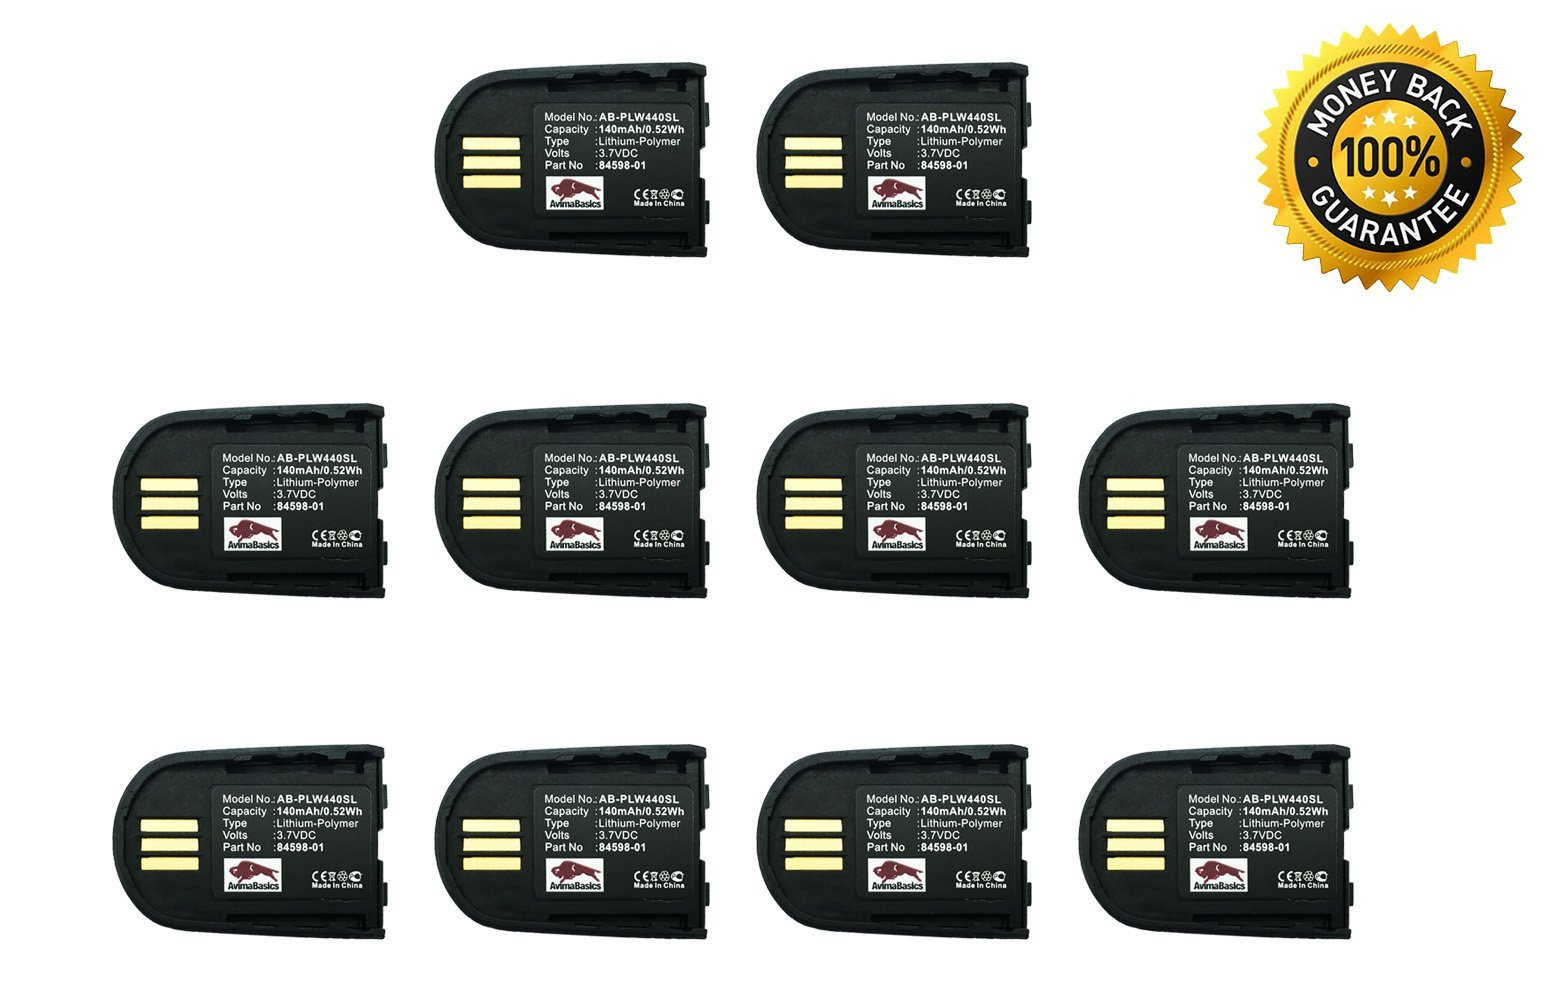 AvimaBasics BEST Premium Quality Replacement Rechargeable 140mAh 3.7V Battery for Plantronics Savi WH500 W440 W740 - Bluetooth Wireless Headset 84598-01 82742-01 - SATISFACTION GUARANTEE! (10 Pack) by AvimaBasics (Image #1)